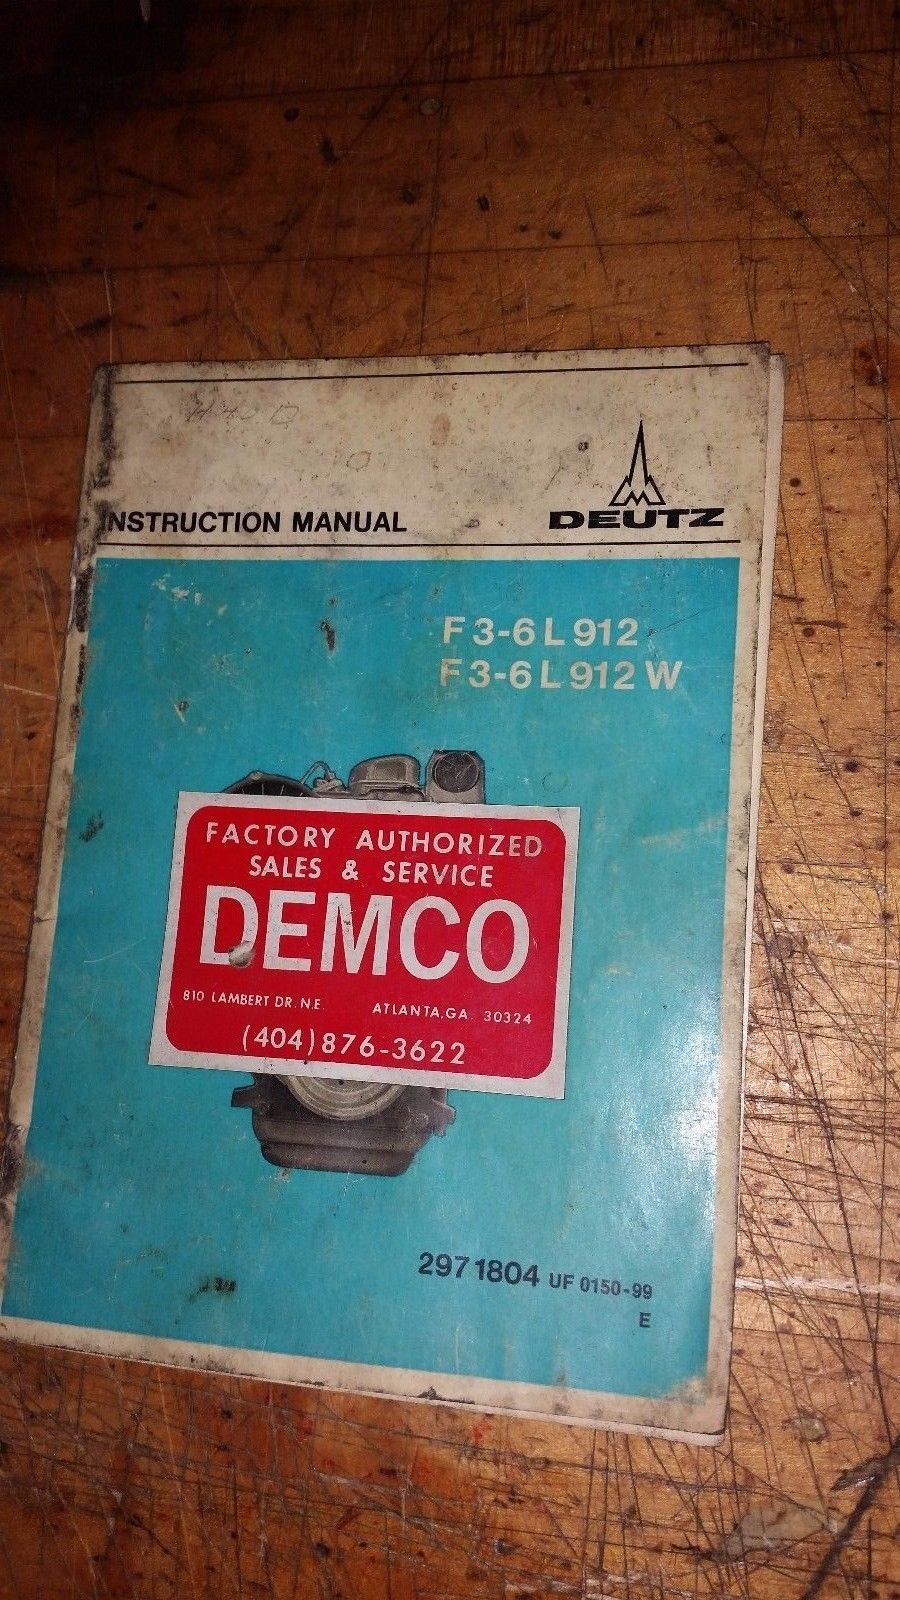 DEUTZ F3-6L 912/W ENGINE INSTRUCTION MANUAL PART# 297-1804